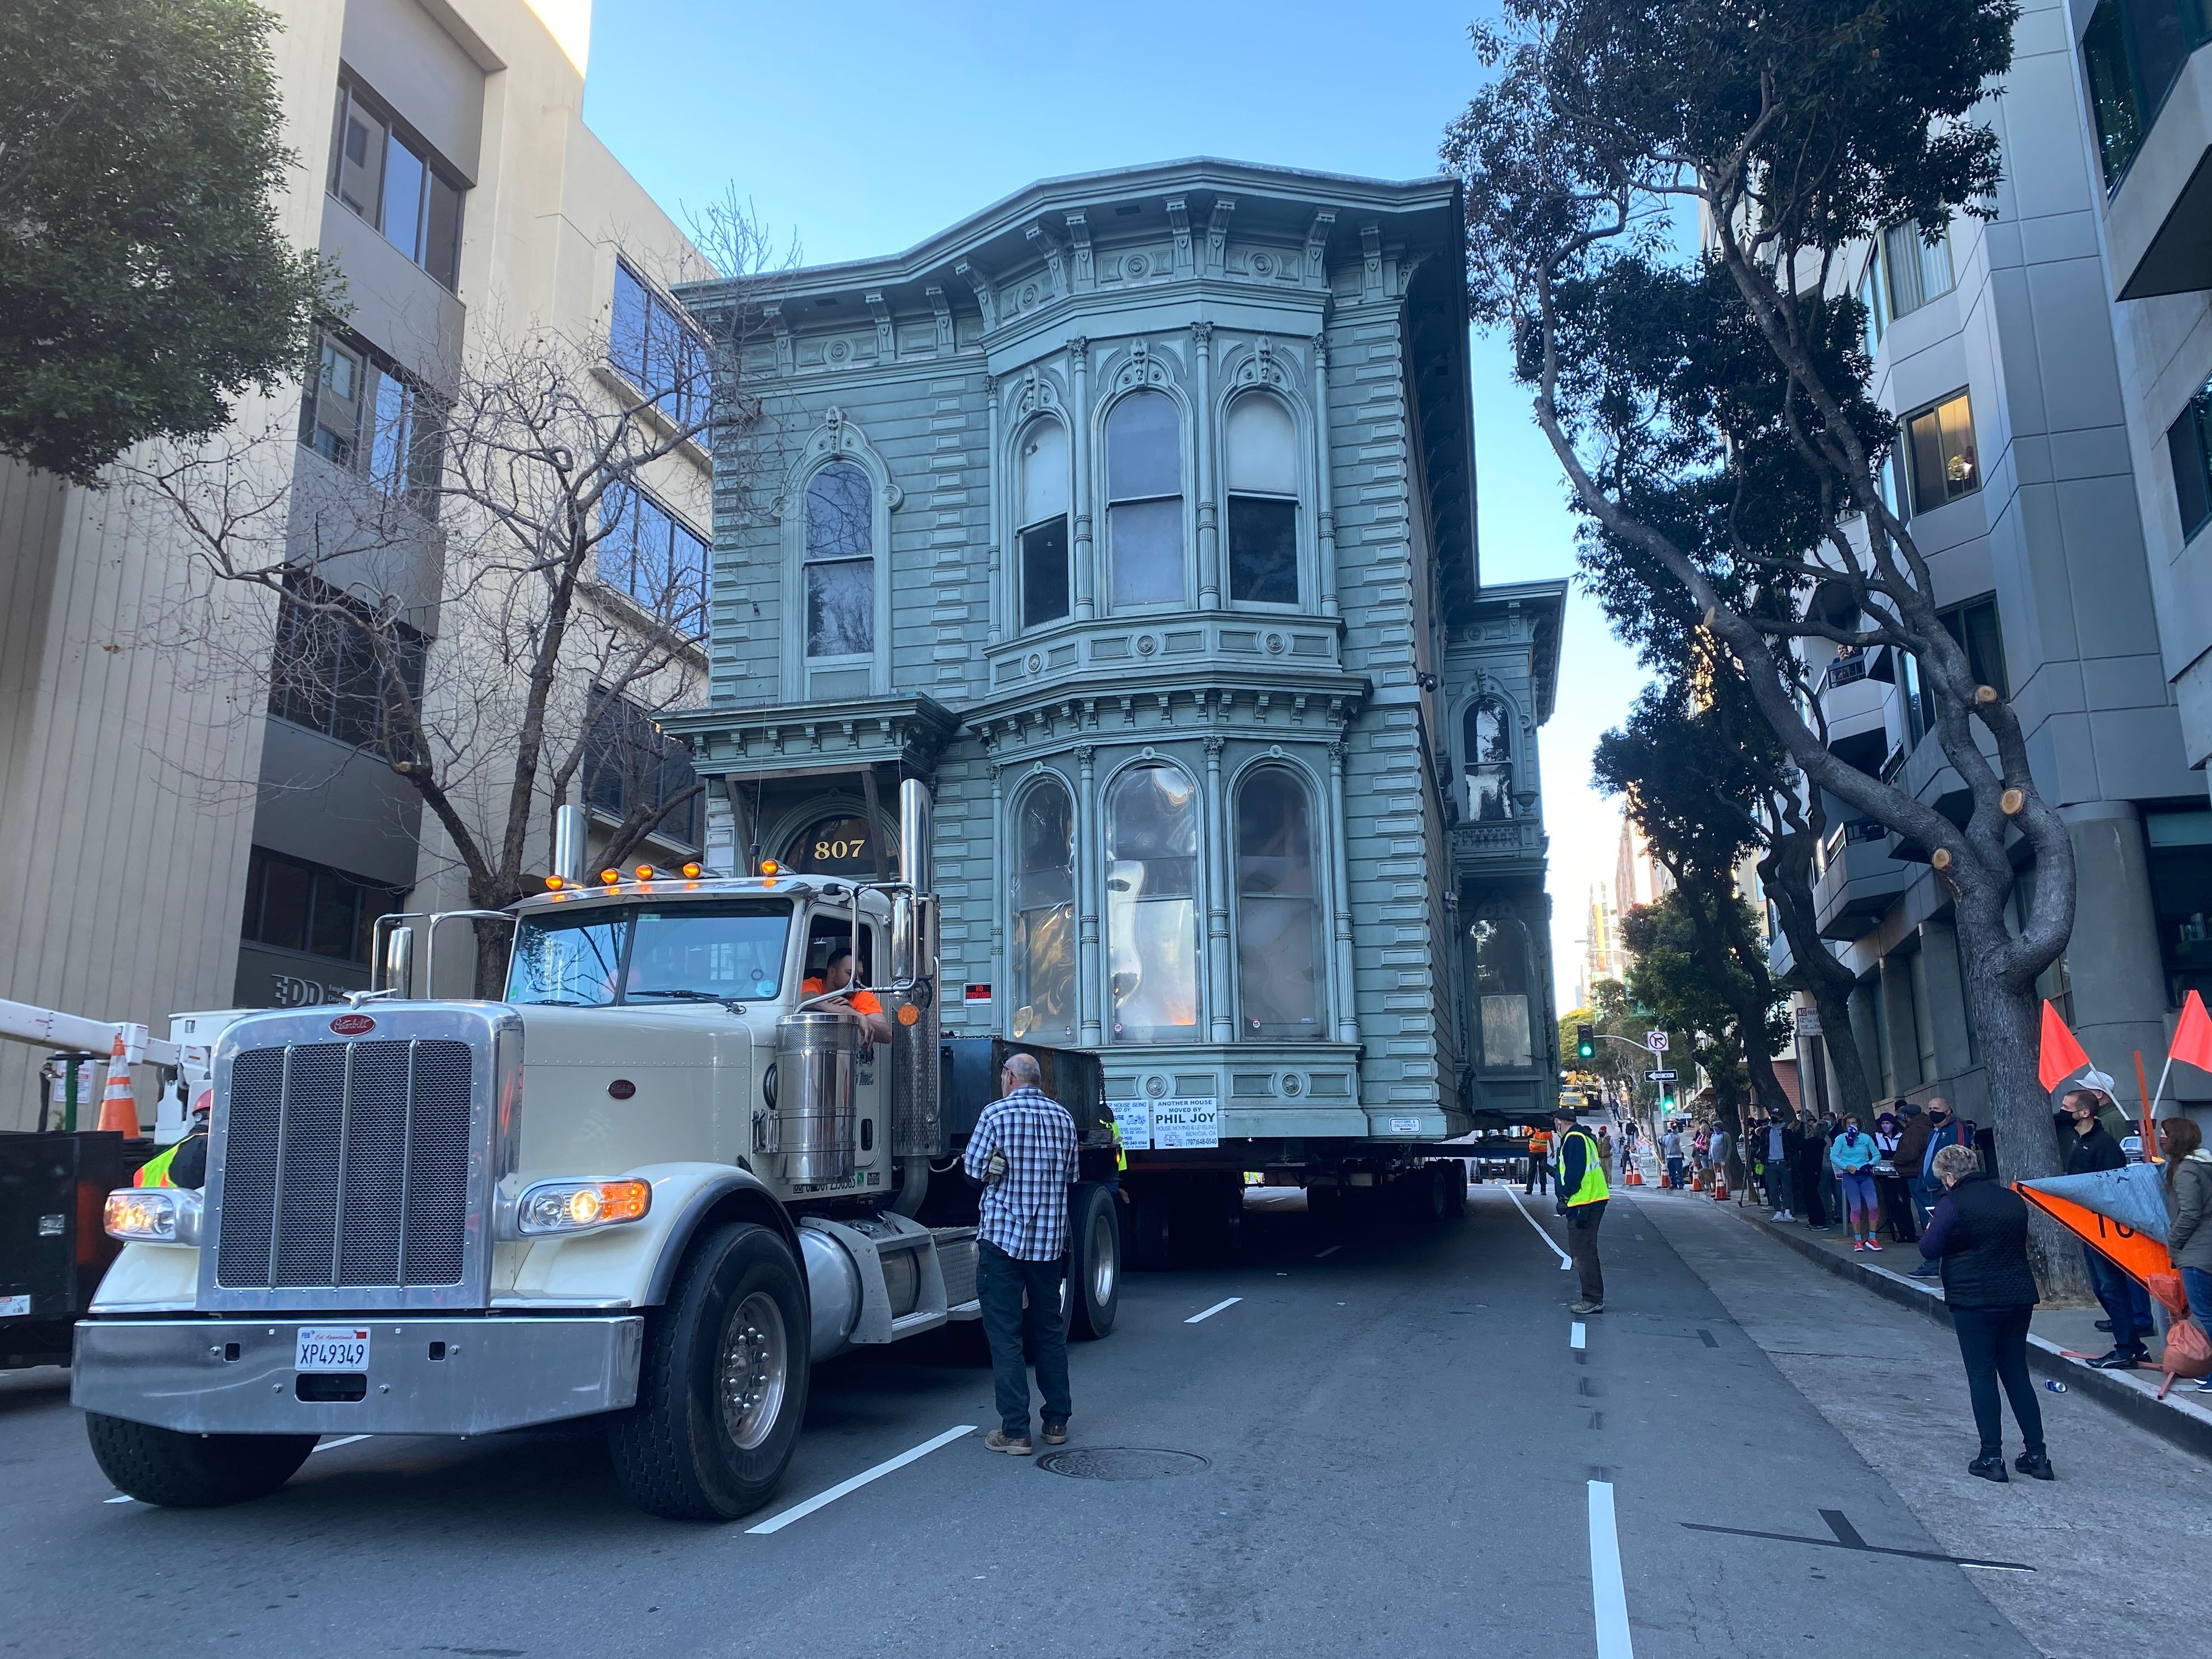 VIDEO: 139-year-old San Francisco Victorian makes hilly, nerve-wracking journey to new home